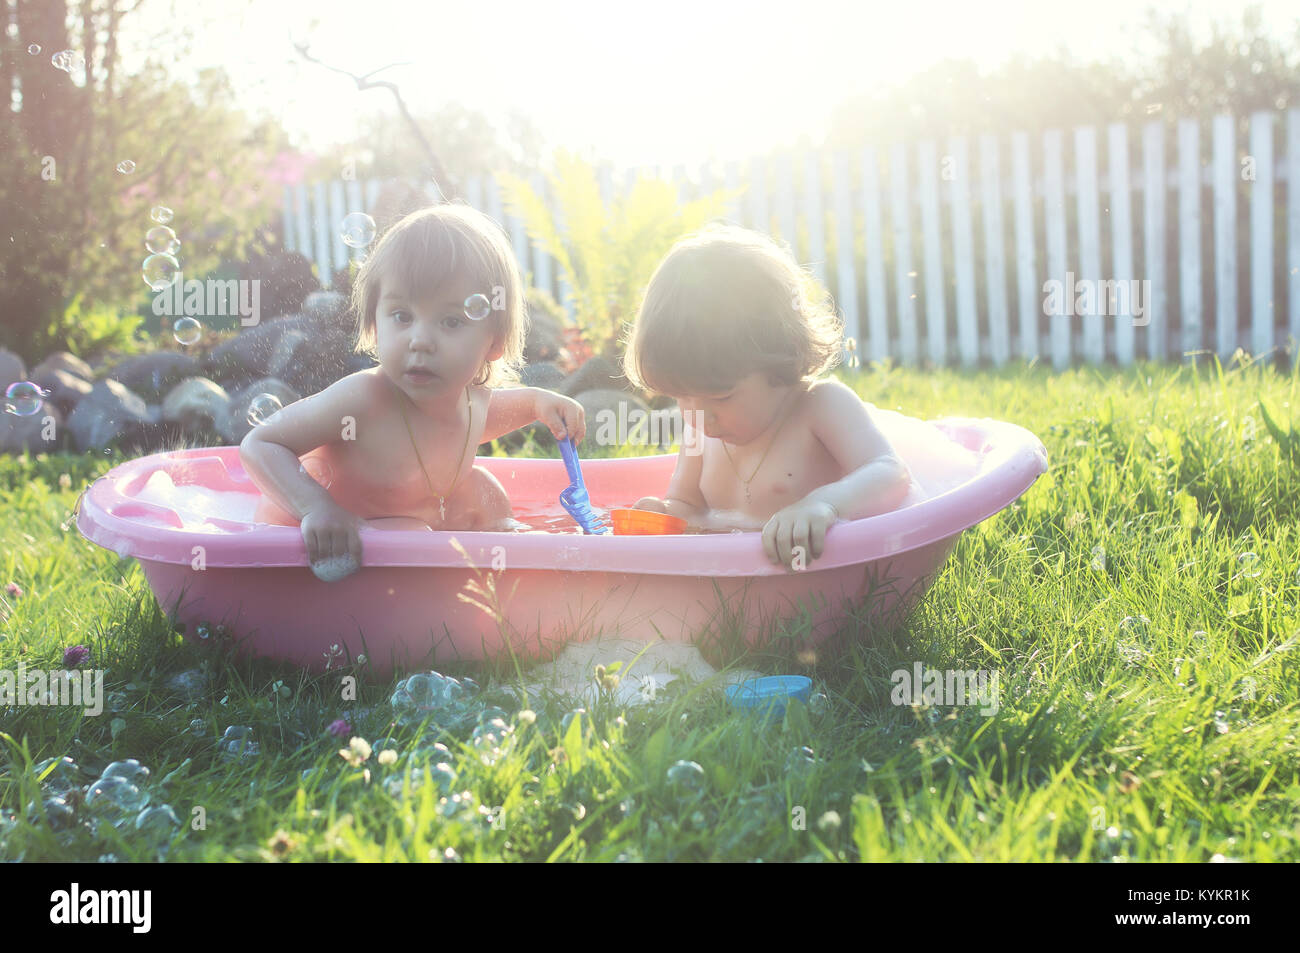 Kids Bath Sponge Stock Photos & Kids Bath Sponge Stock Images - Alamy